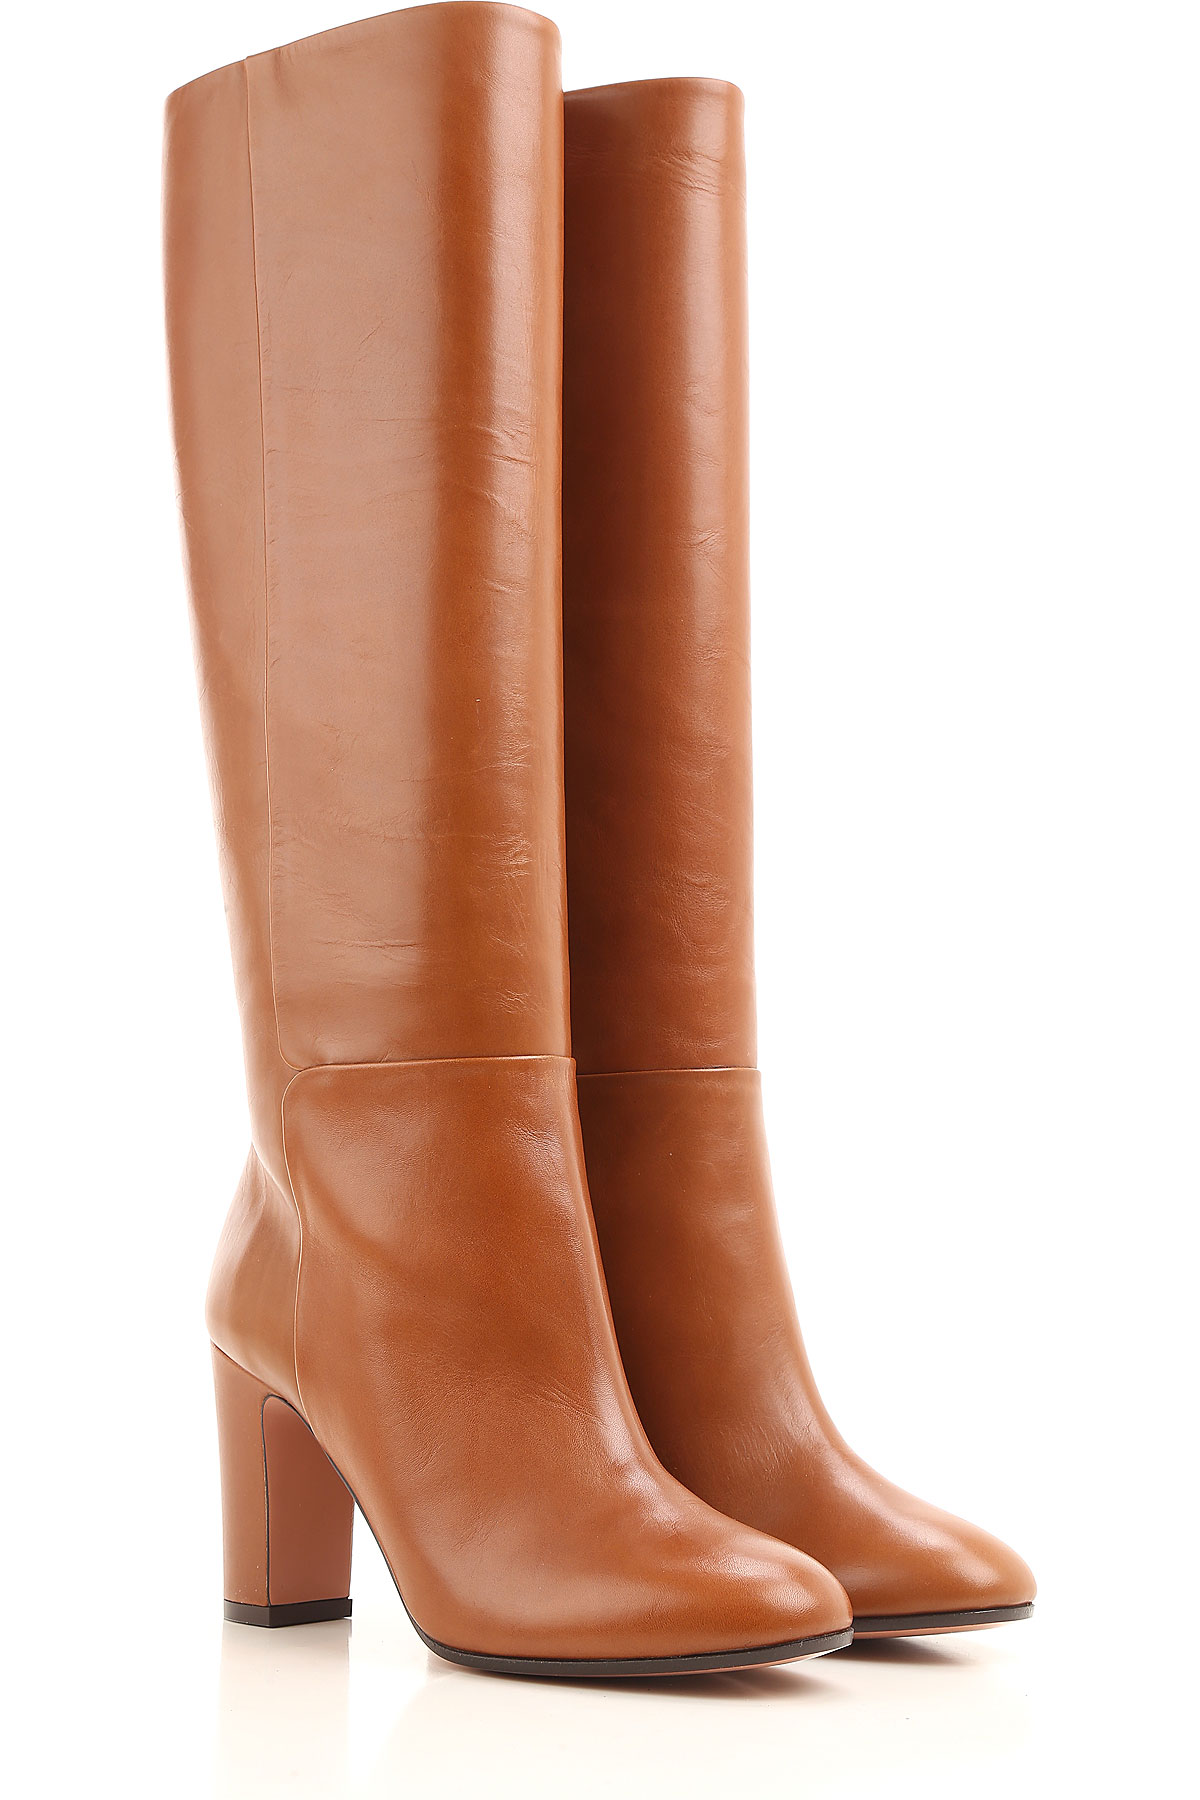 Image of Aquazzura Boots for Women, Booties On Sale in Outlet, Light Brown, Leather, 2017, 10 5 6 8